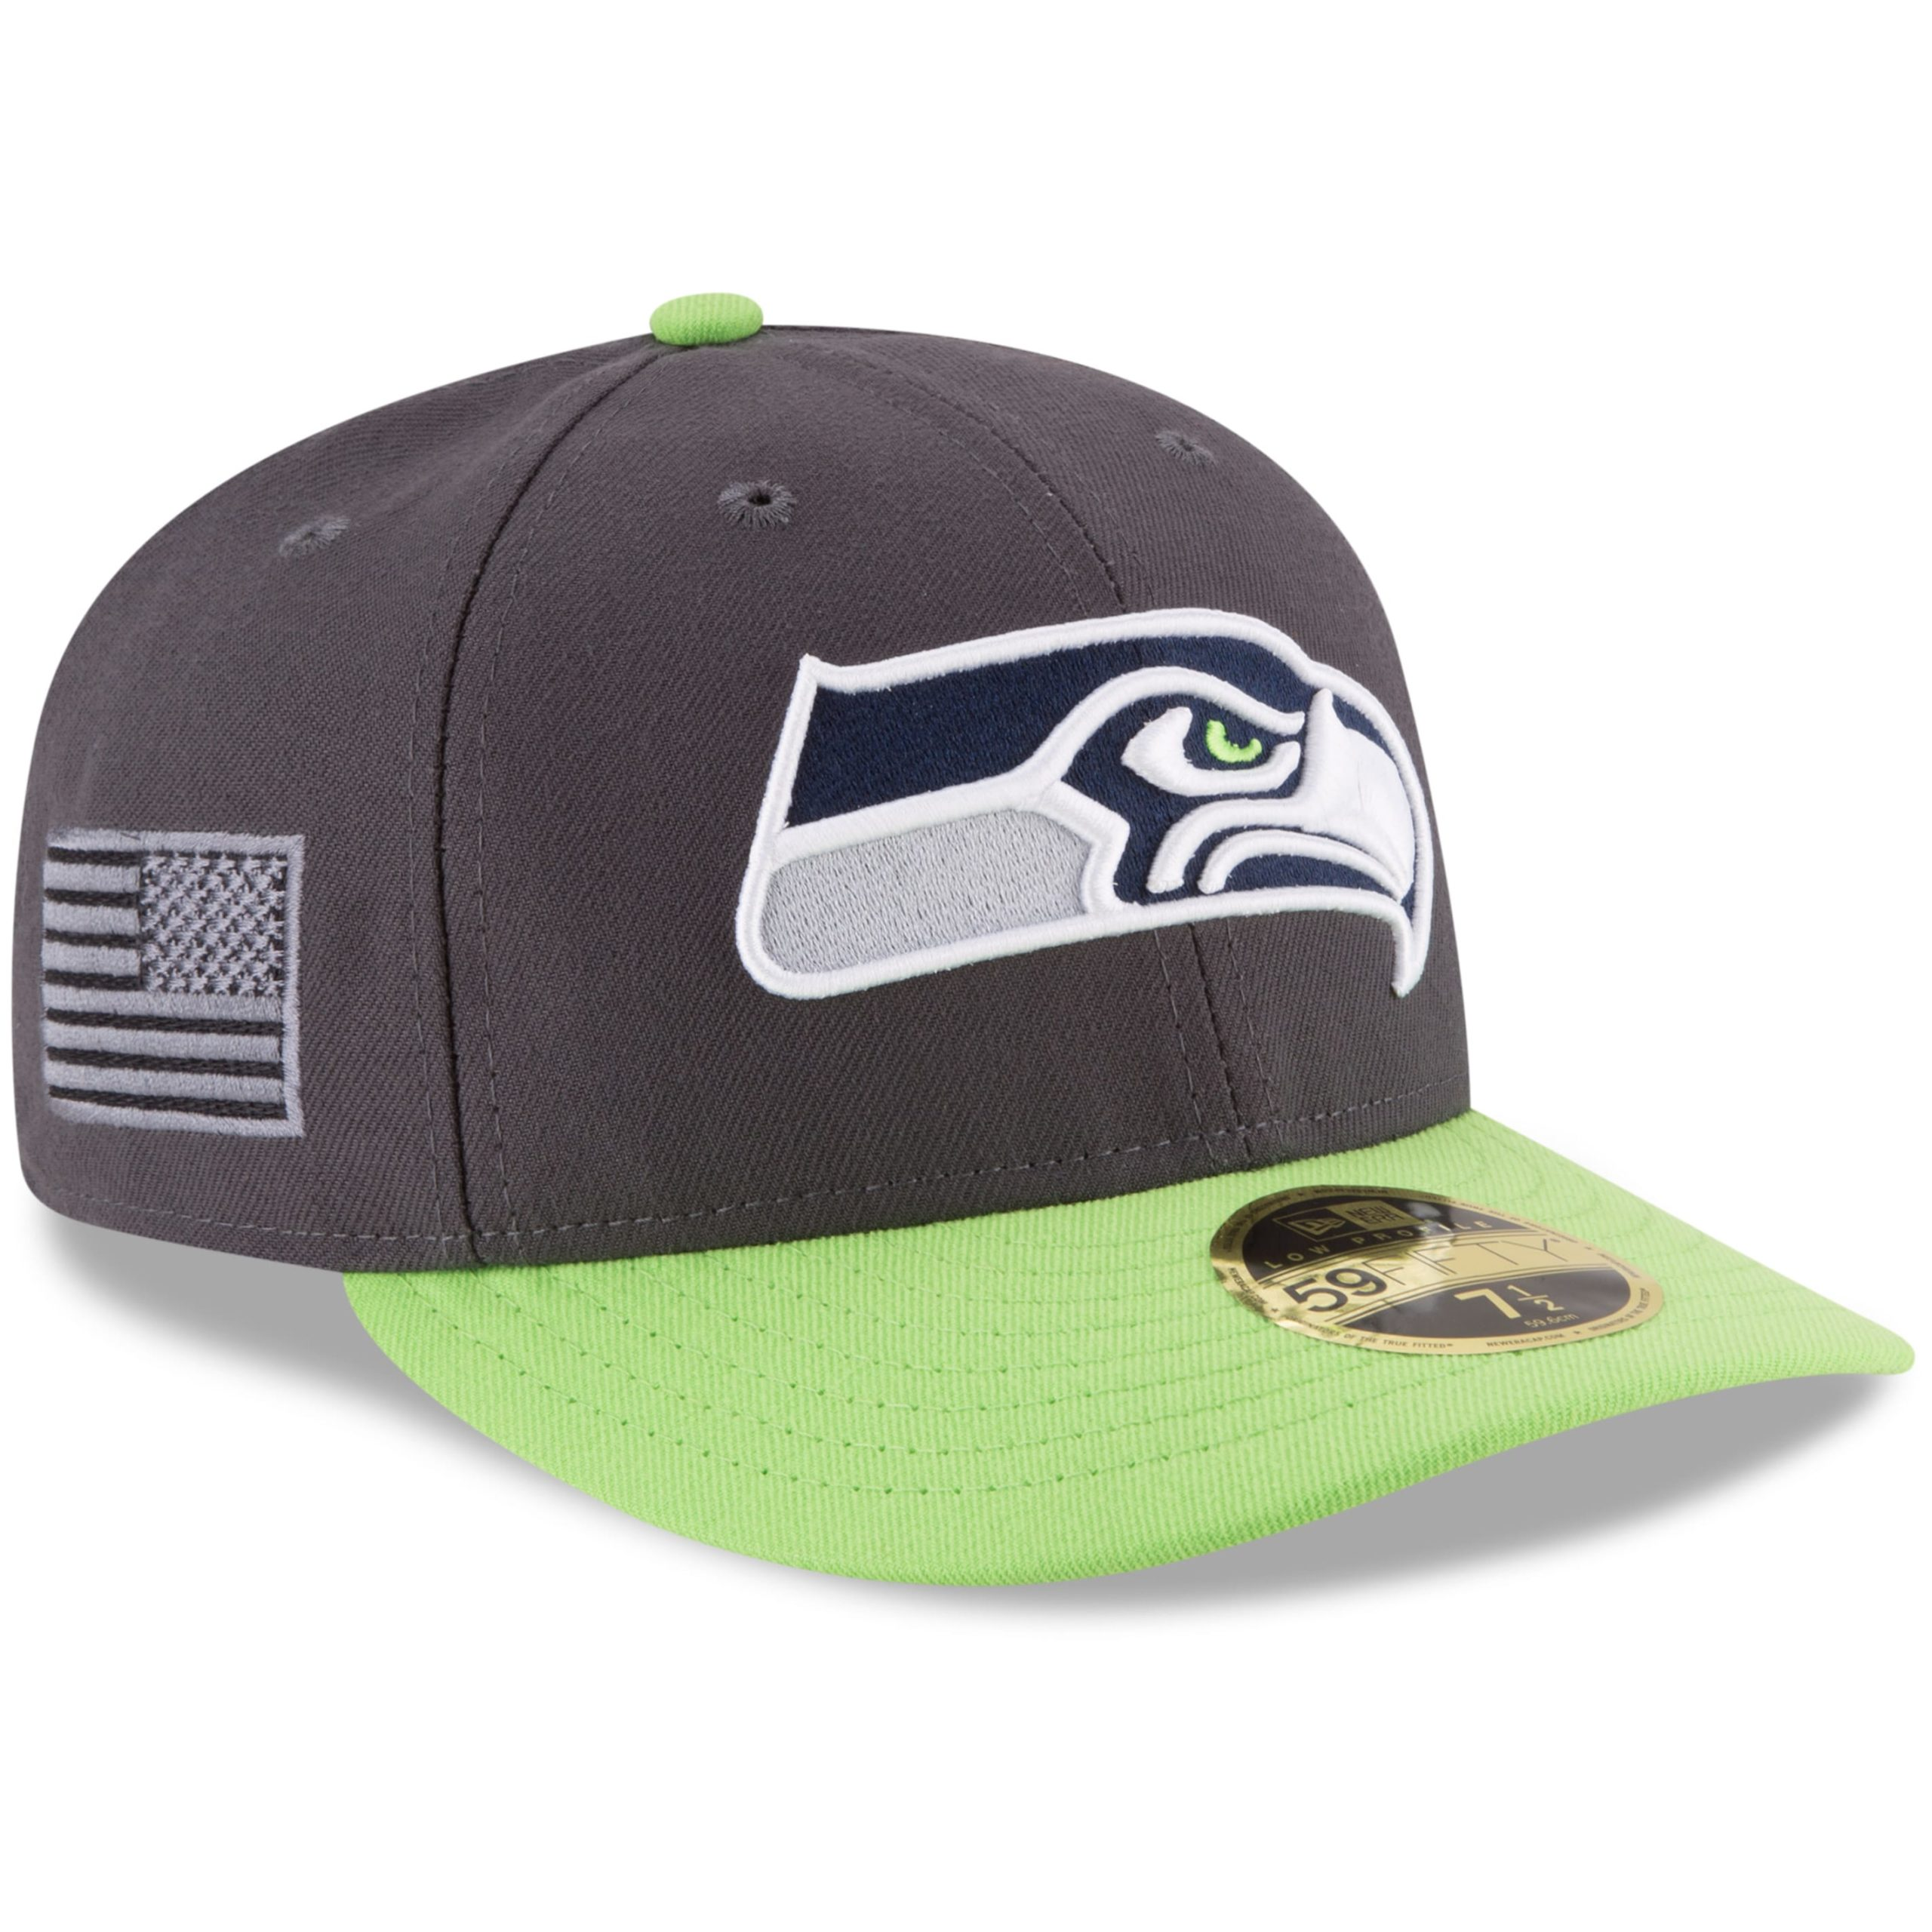 Seattle Seahawks New Era Crafted In America Low Profile 59FIFTY Fitted Hat - Graphite